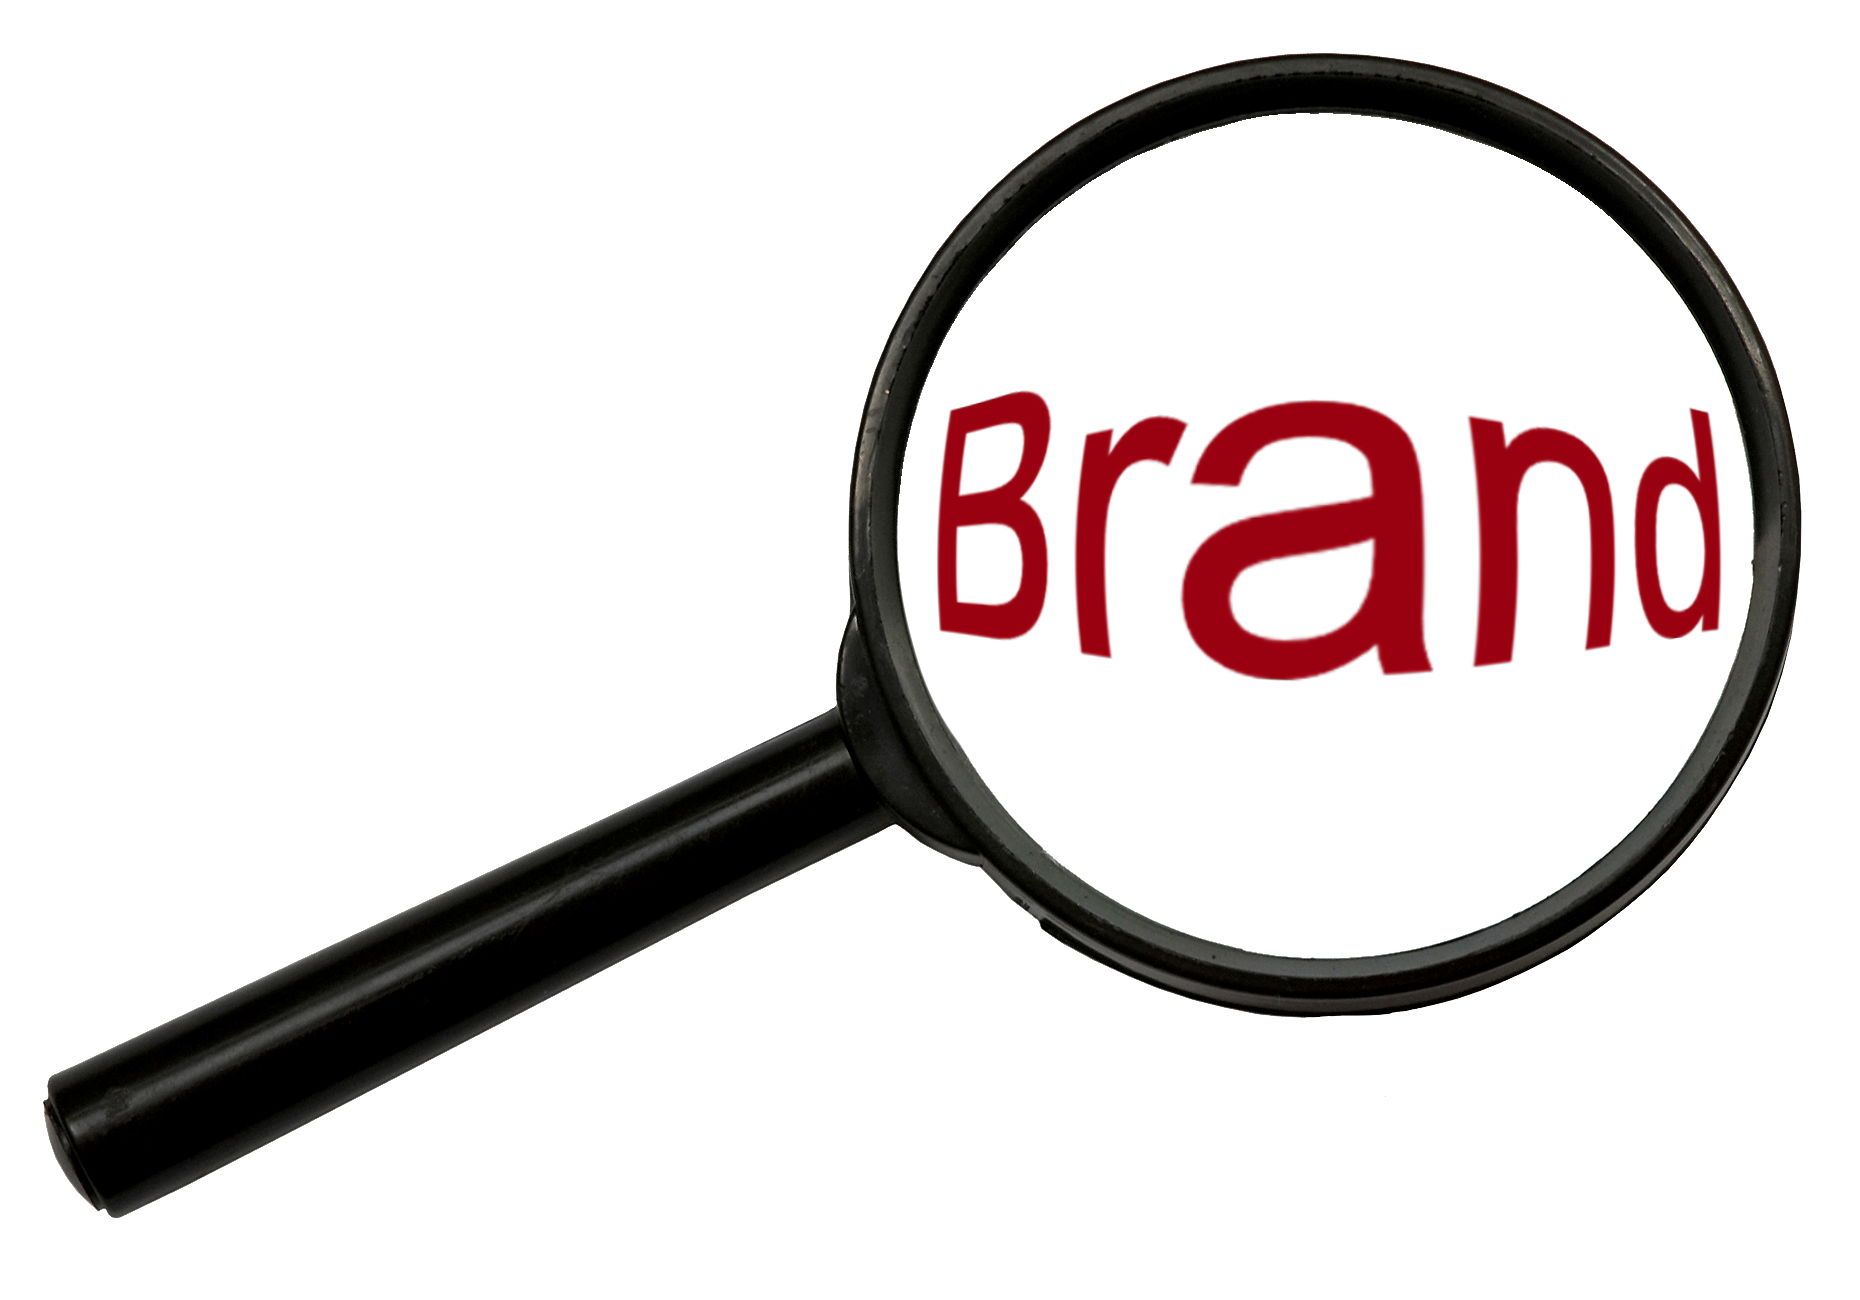 Reason for Shifting to Other Brand